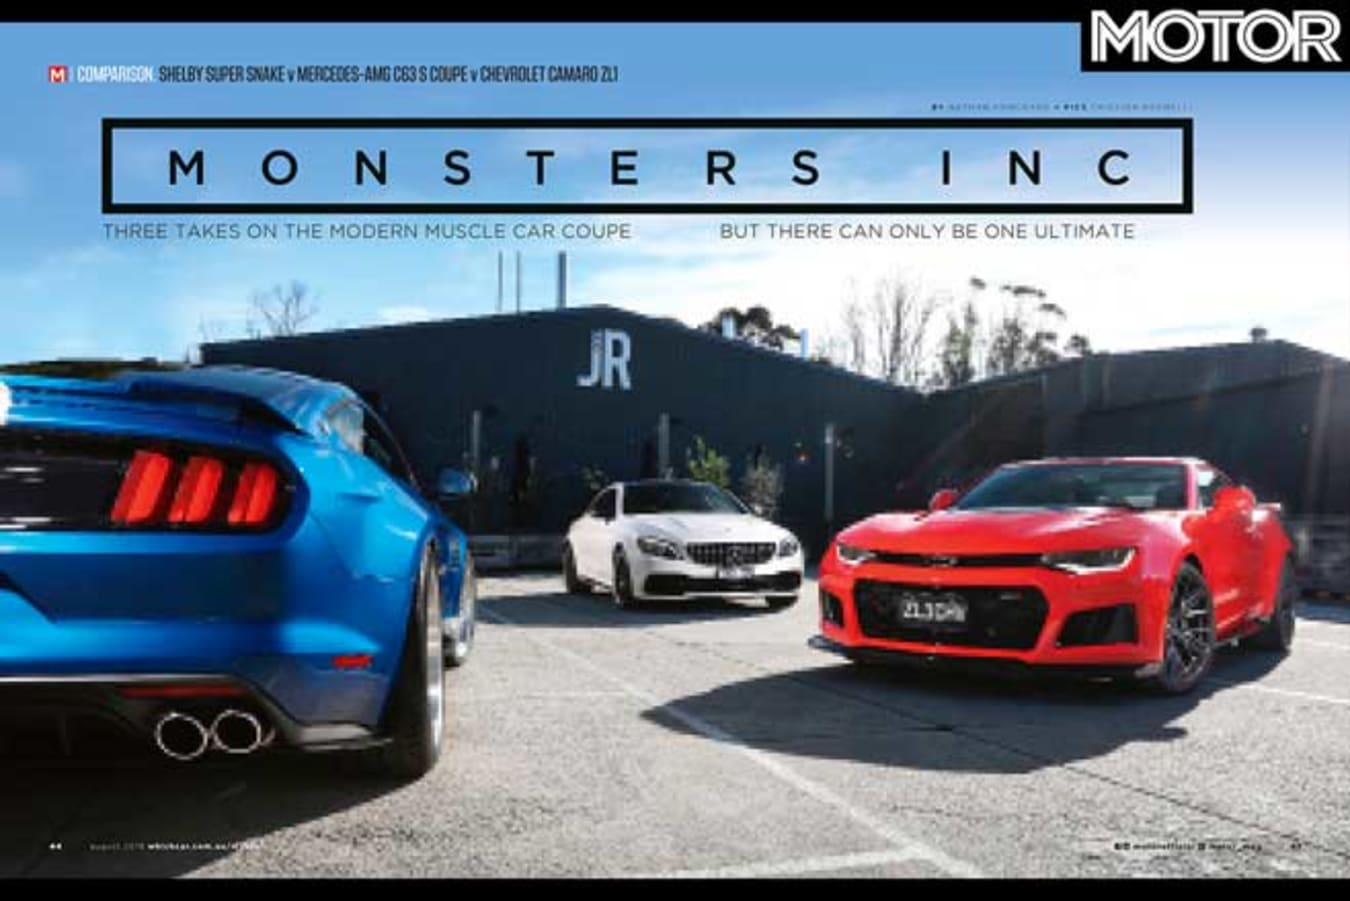 MOTOR August 2019 Issue Preview Super Snake Camaro ZL 1 AMG C 63 S Comparison Feature Jpg